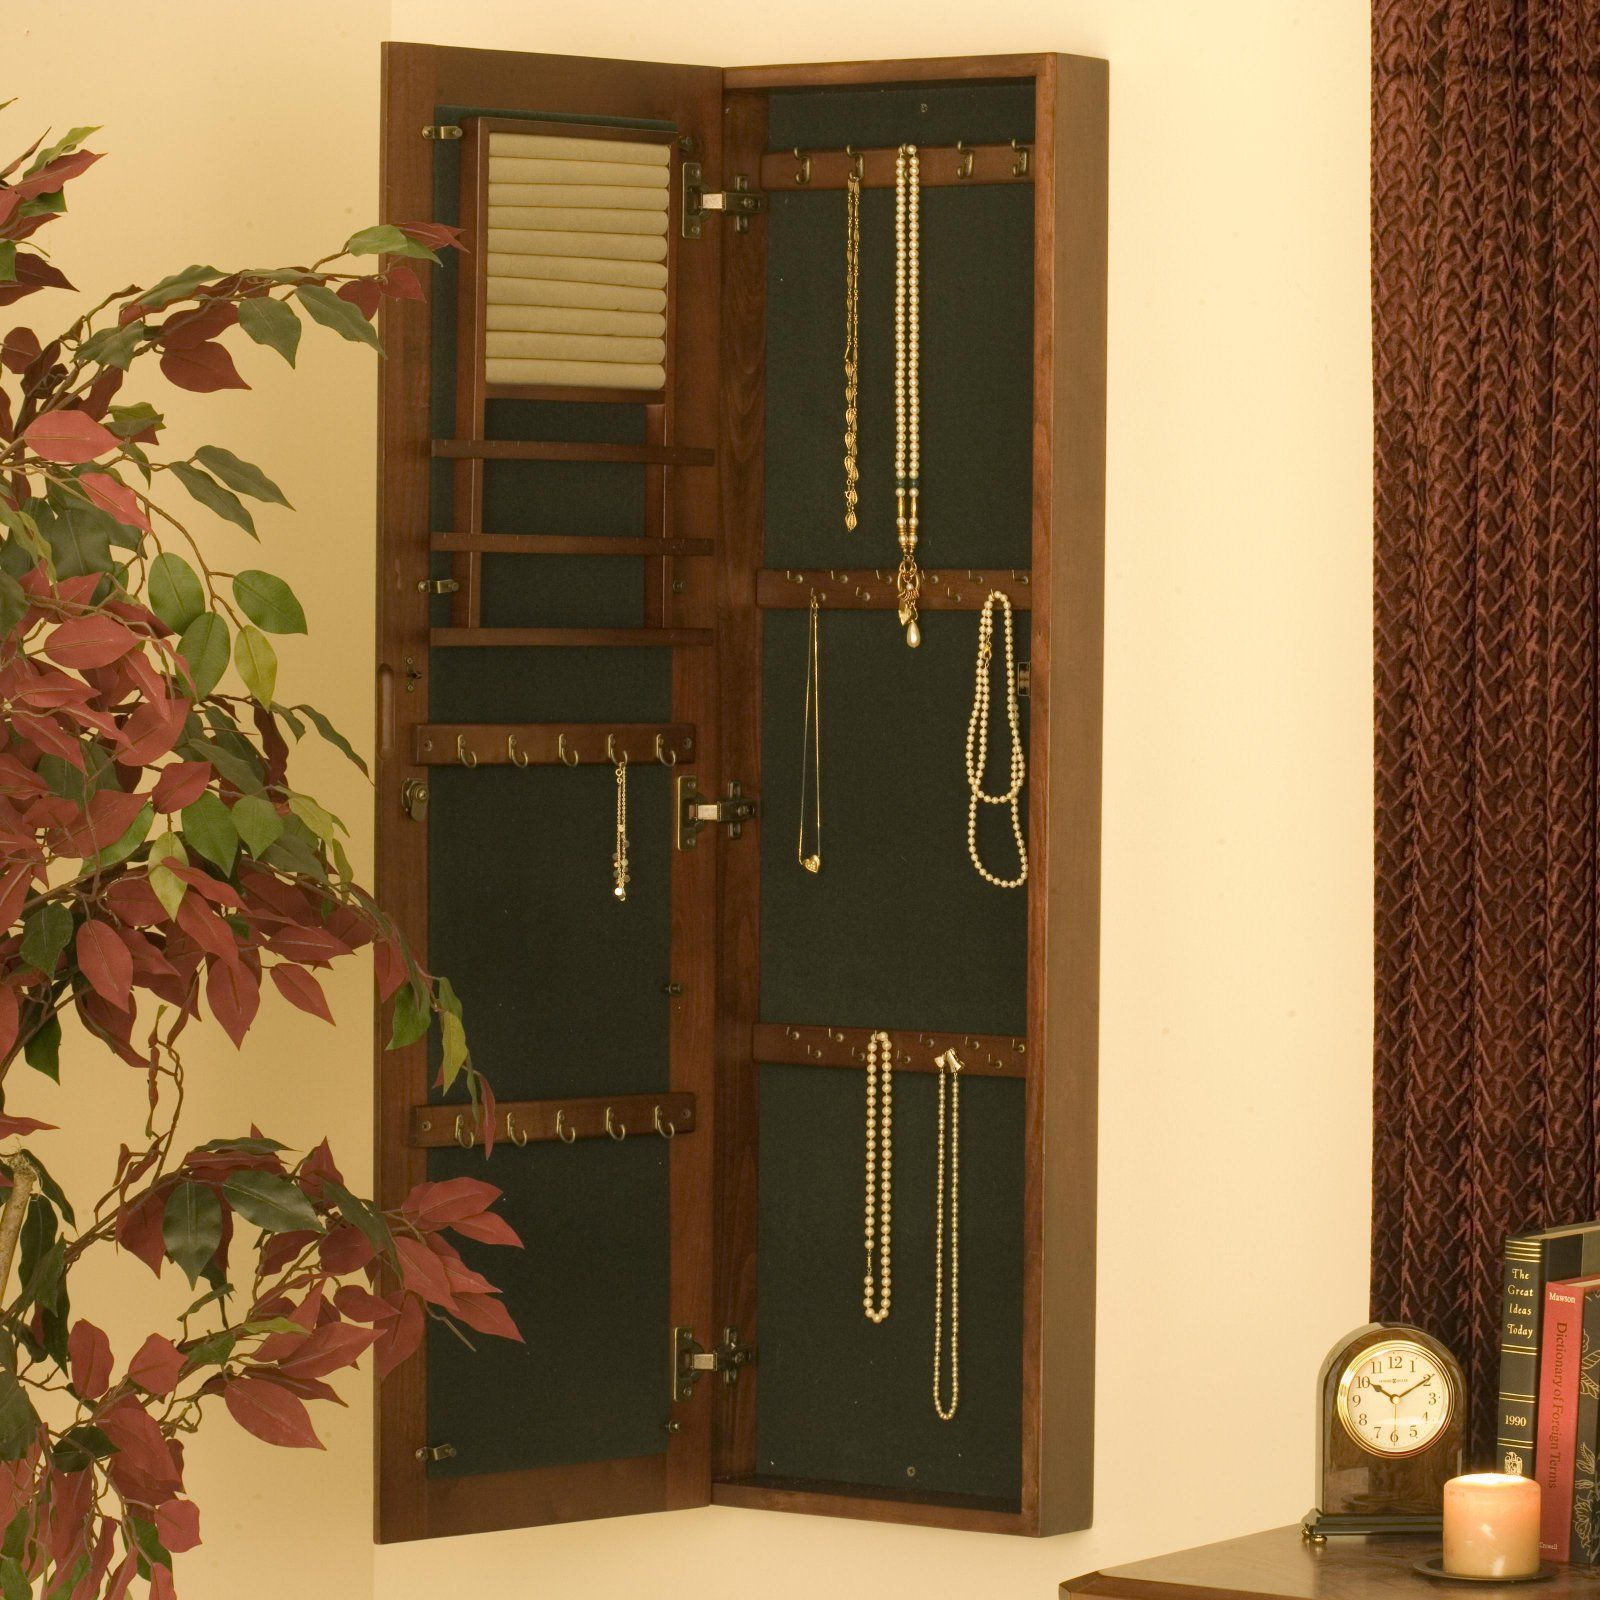 Home Jewelry Armoire Mirror Jewelry Armoire Wall Mounted Jewelry Armoire